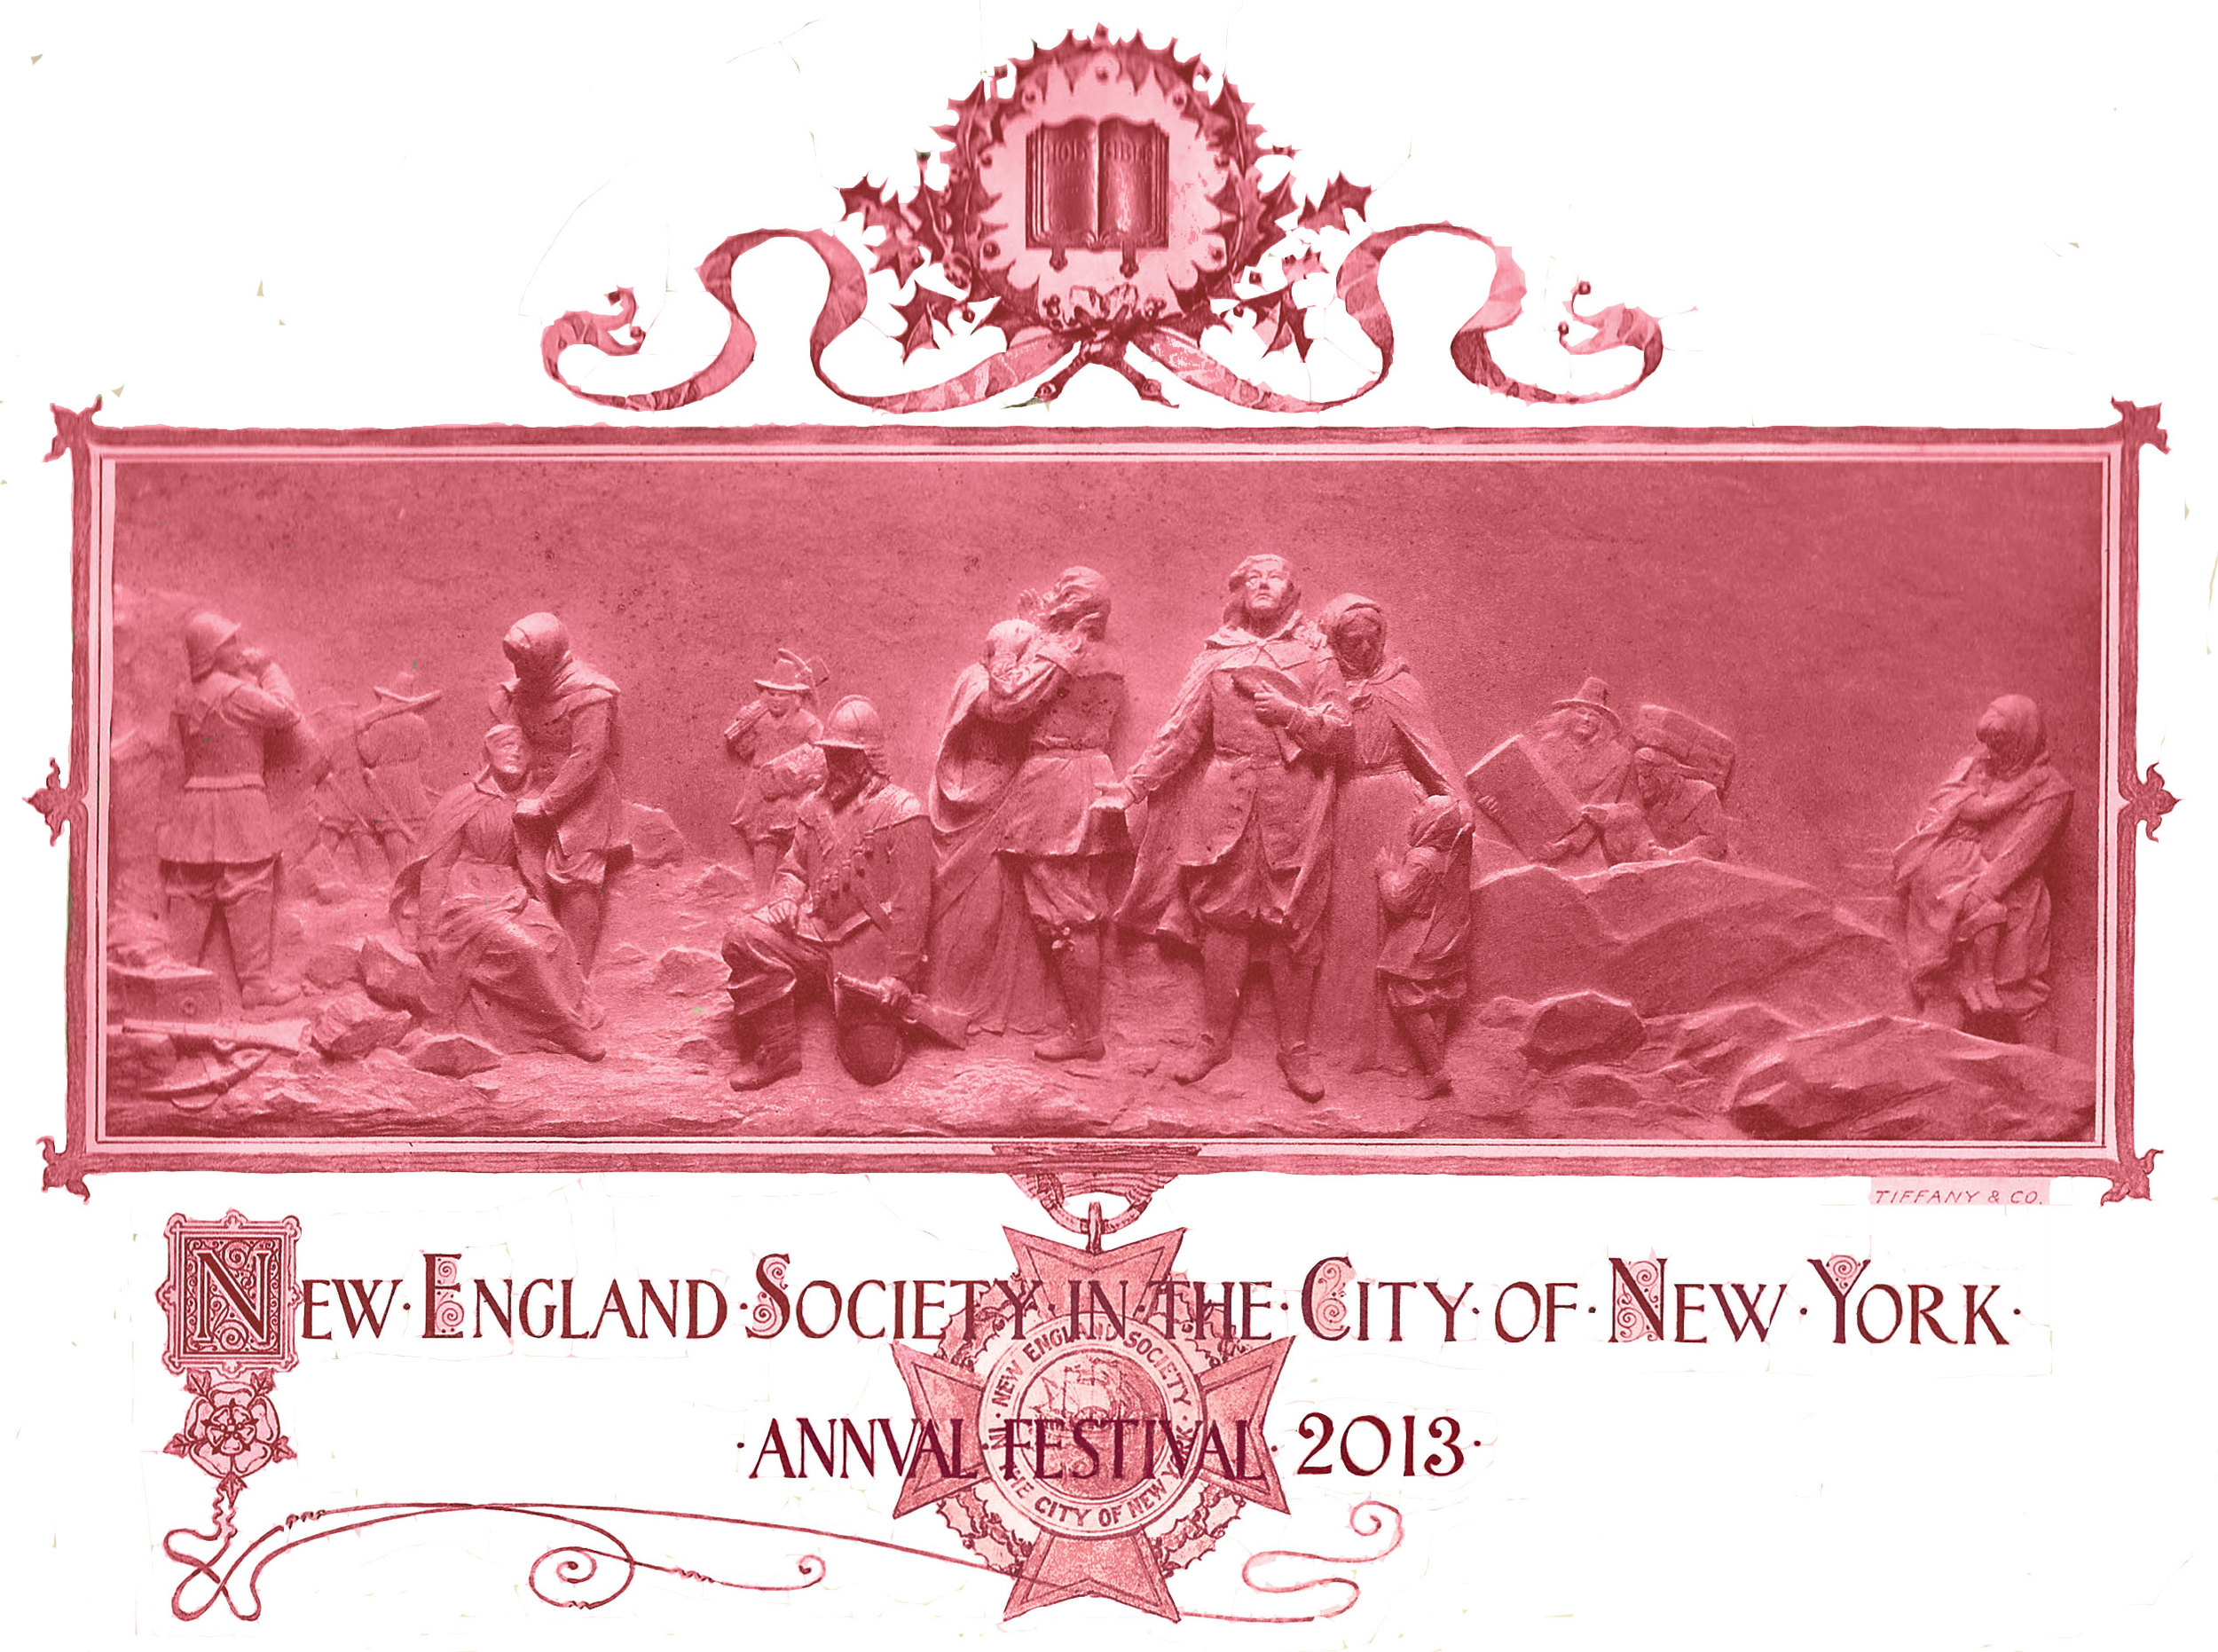 Illustration taken from the 1901 New England Society Annual Festival Invitation, Designed by Tiffany & Co.